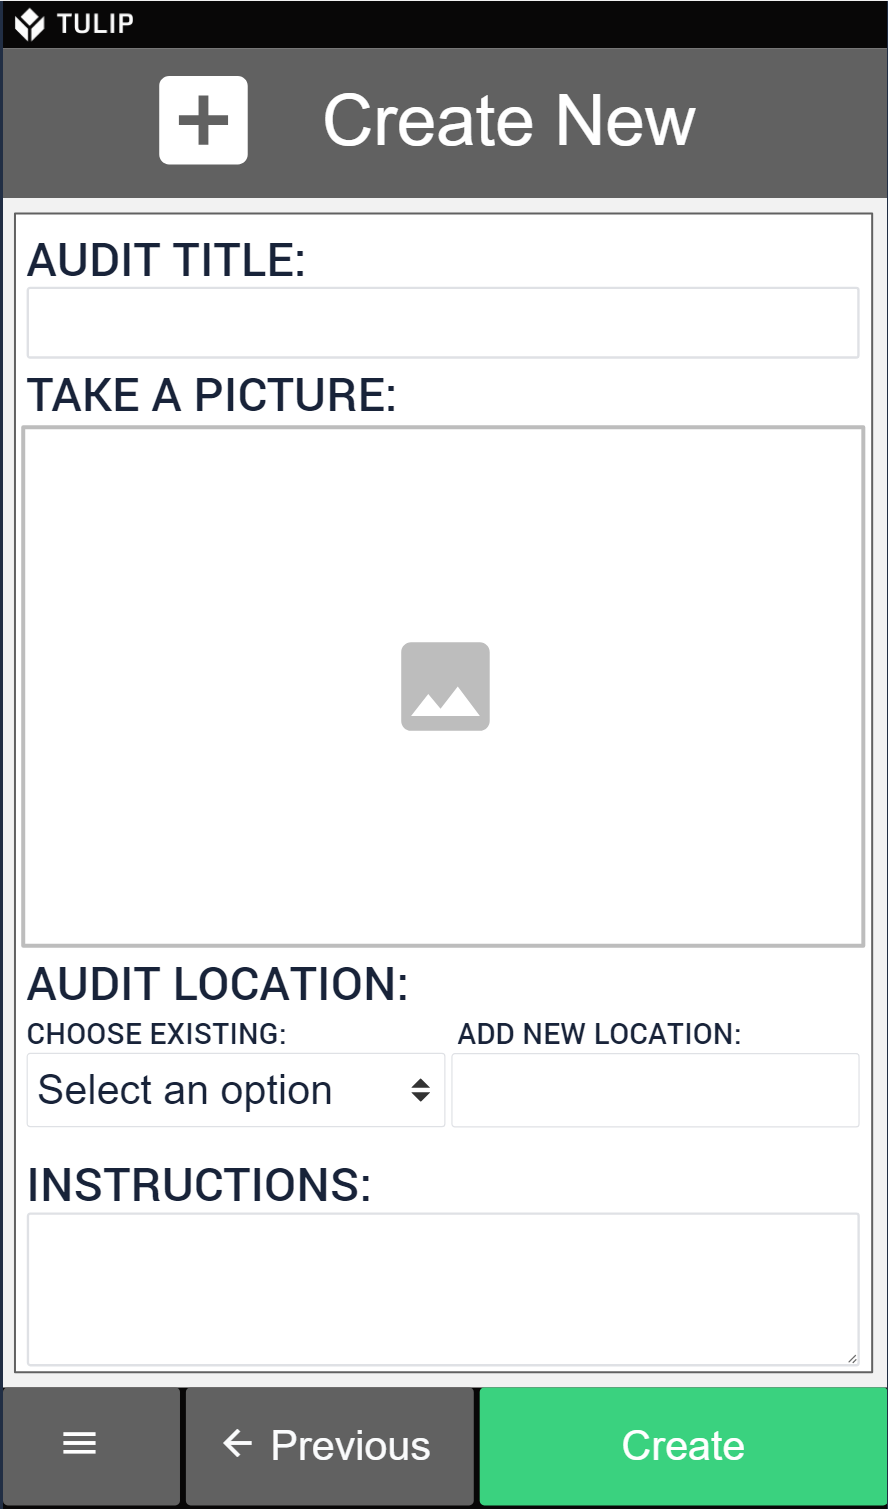 Create mobile audits that match your exact auditing needs